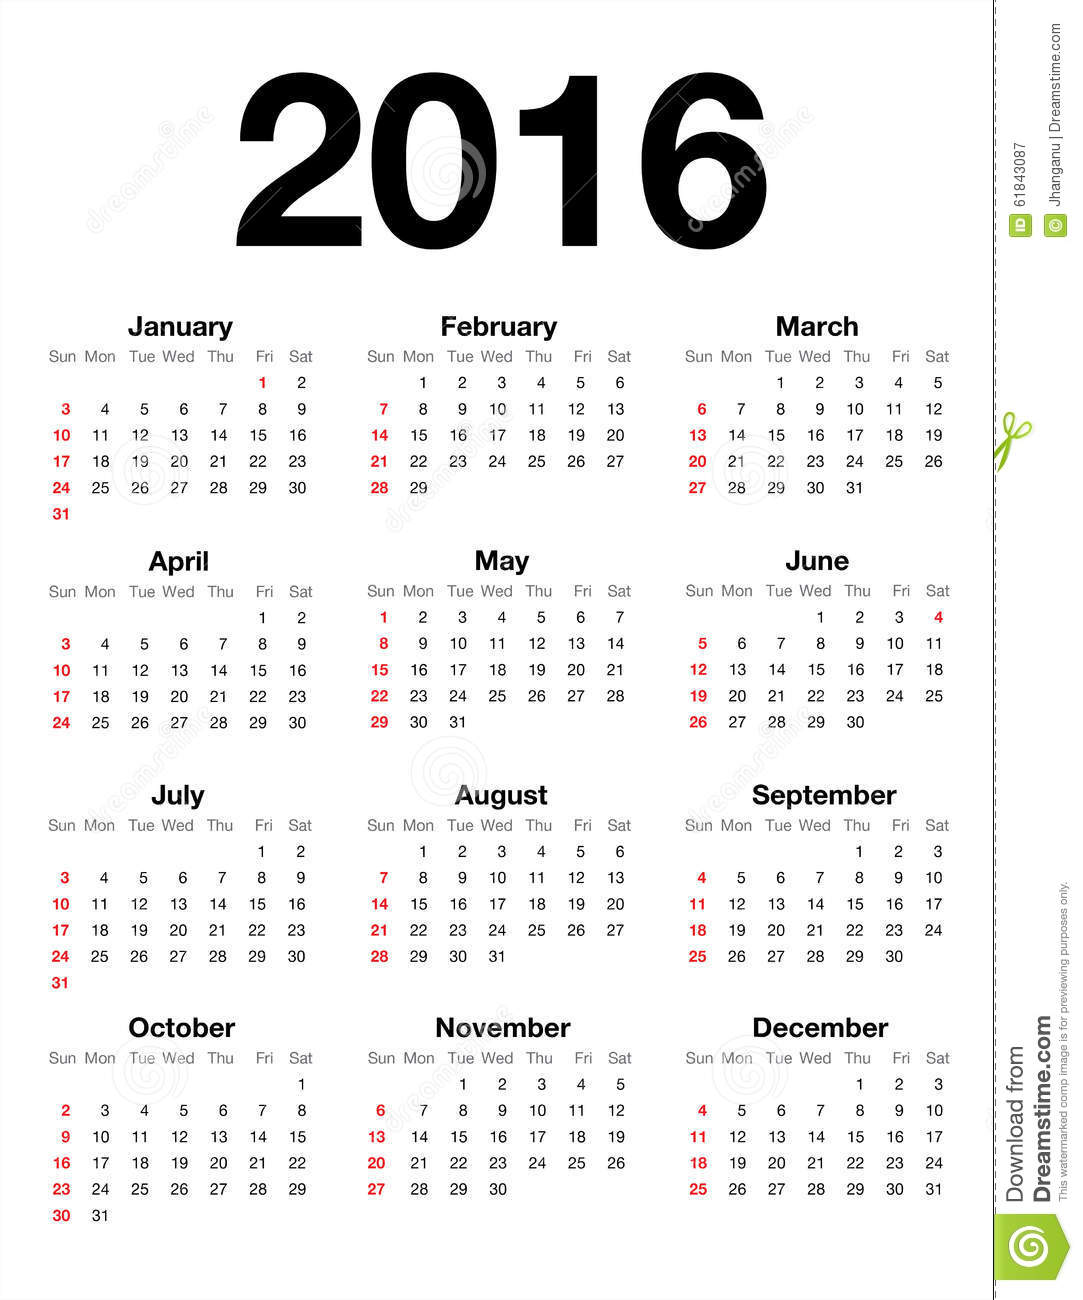 American Calendar For 2016 Stock Vector - Image: 61843087